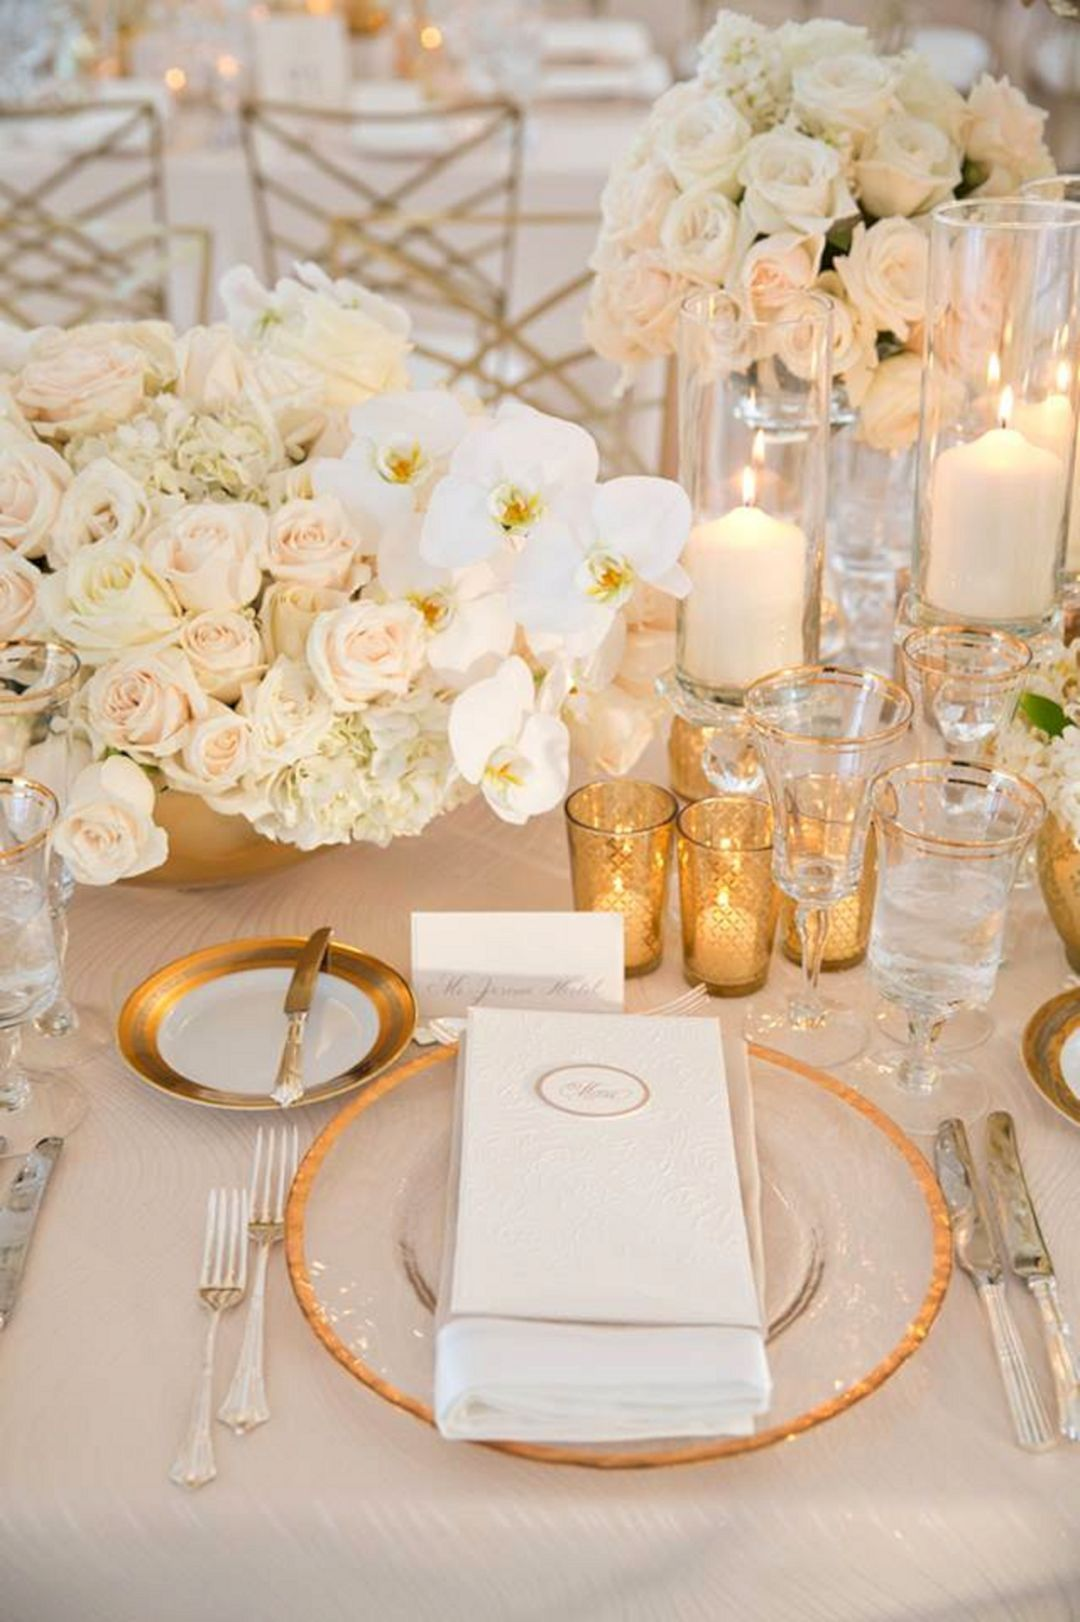 formal glamorous white flower and glitter wedding table settings